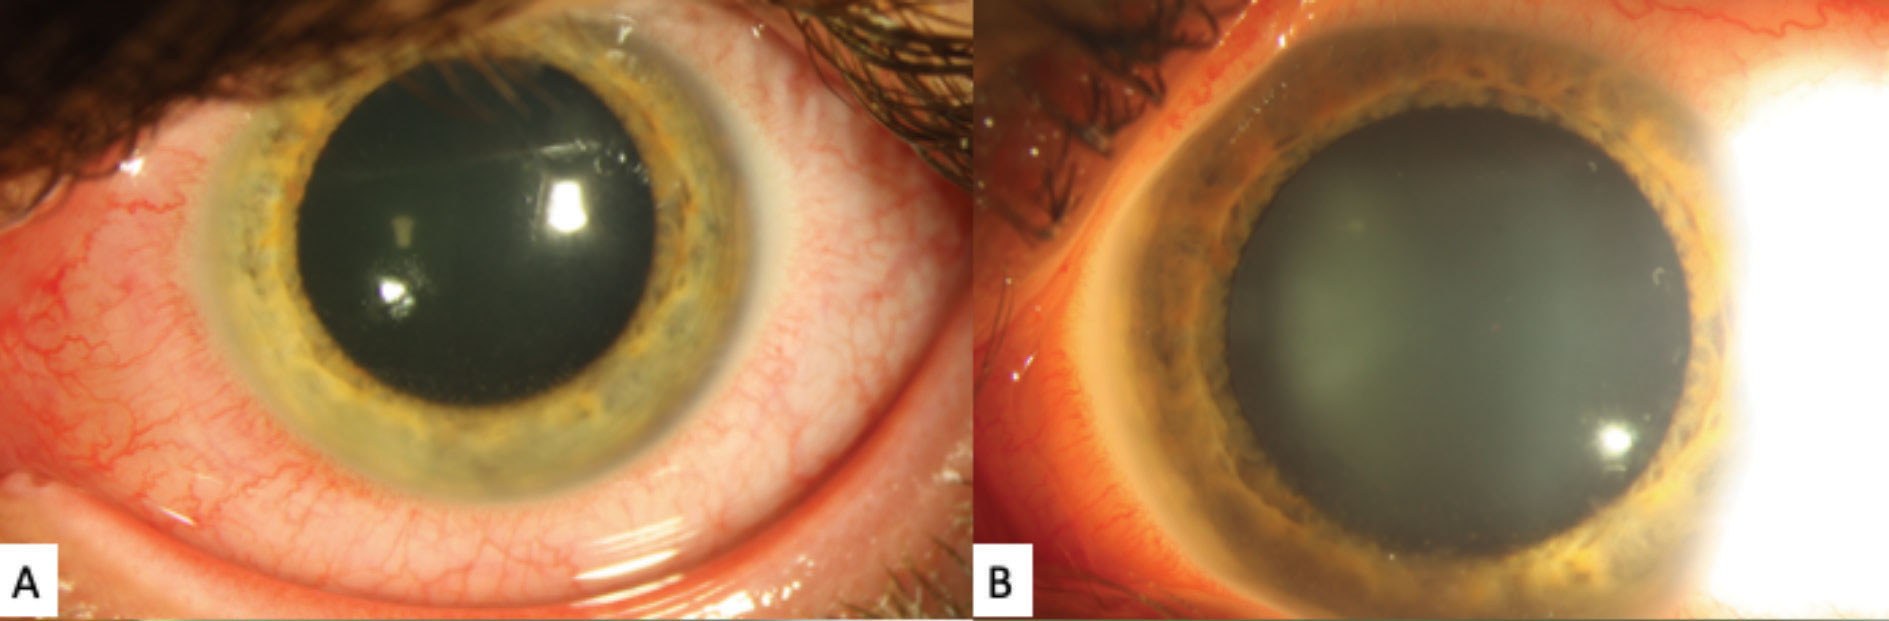 These gross external slit lamp photos of the patient's left eye shows significant diffuse episcleral injection. A faint posterior corneal opacities can be see, although the detail is poor.